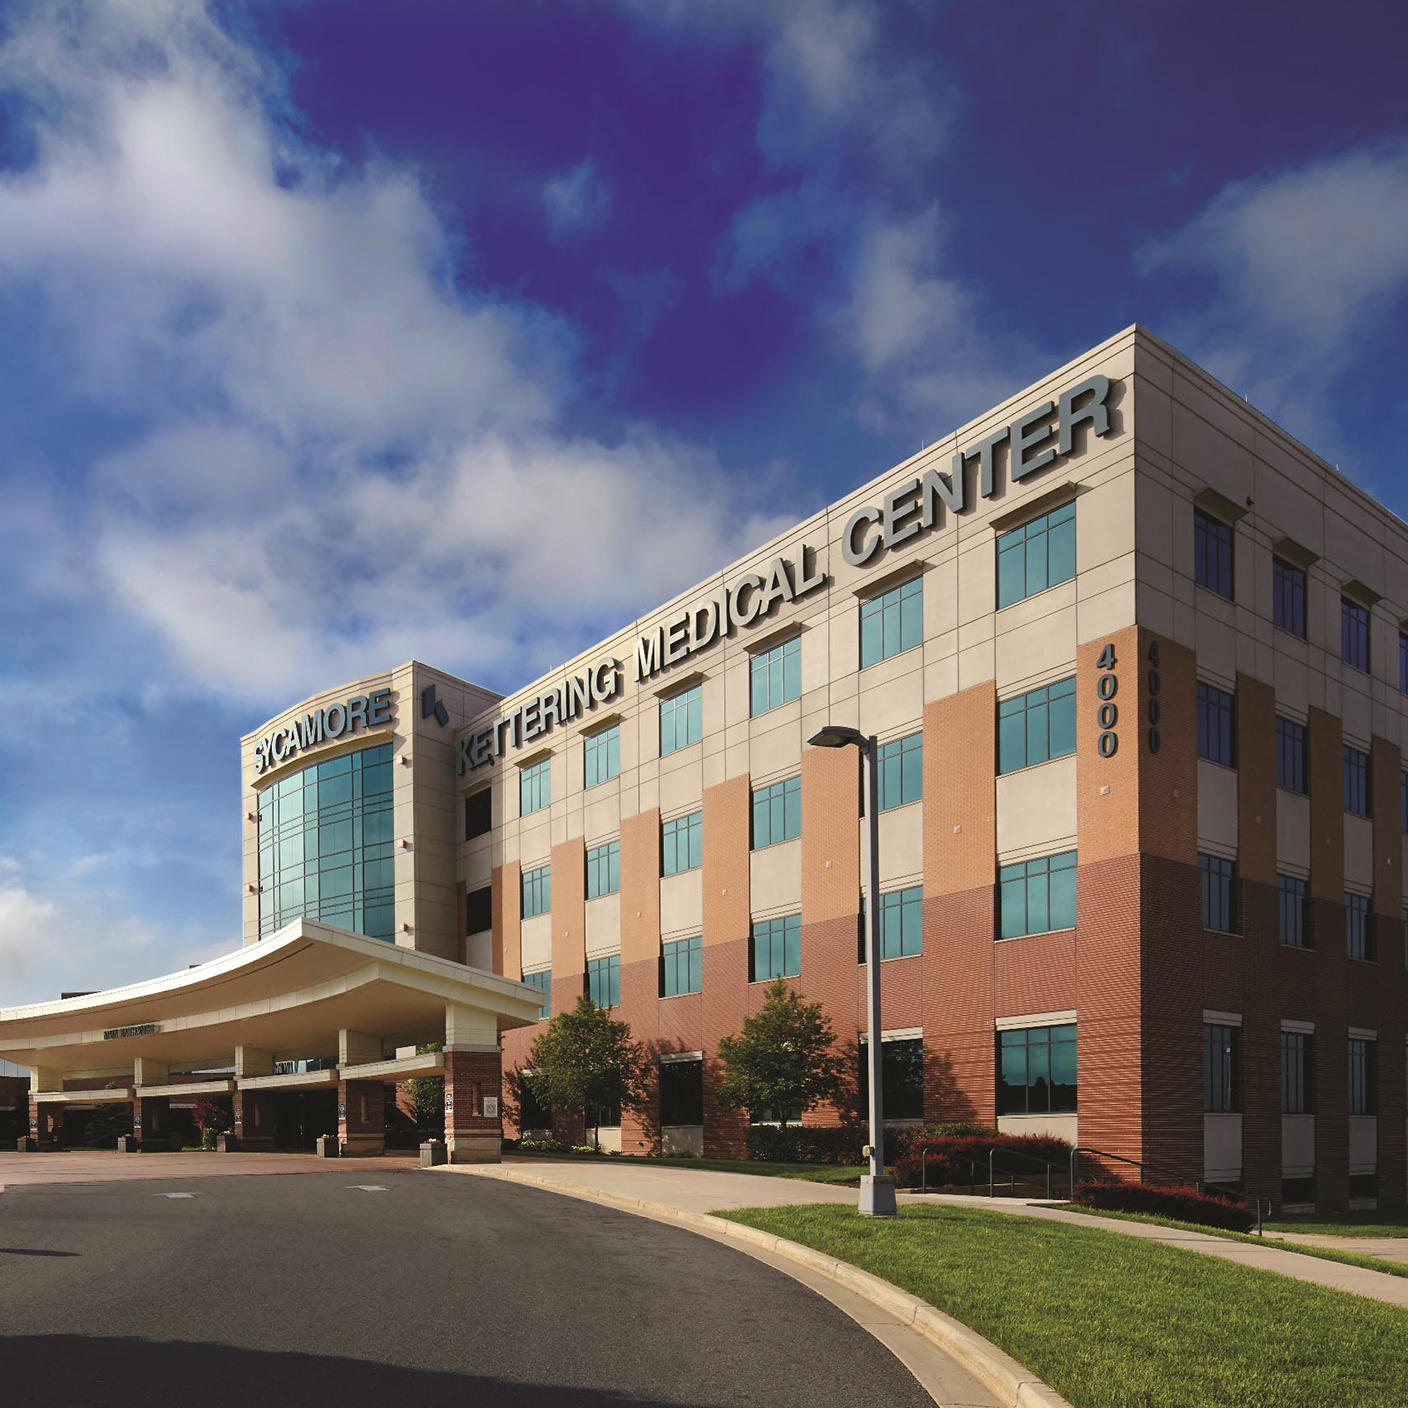 Sycamore Medical Center (Kettering Health Miamisburg)